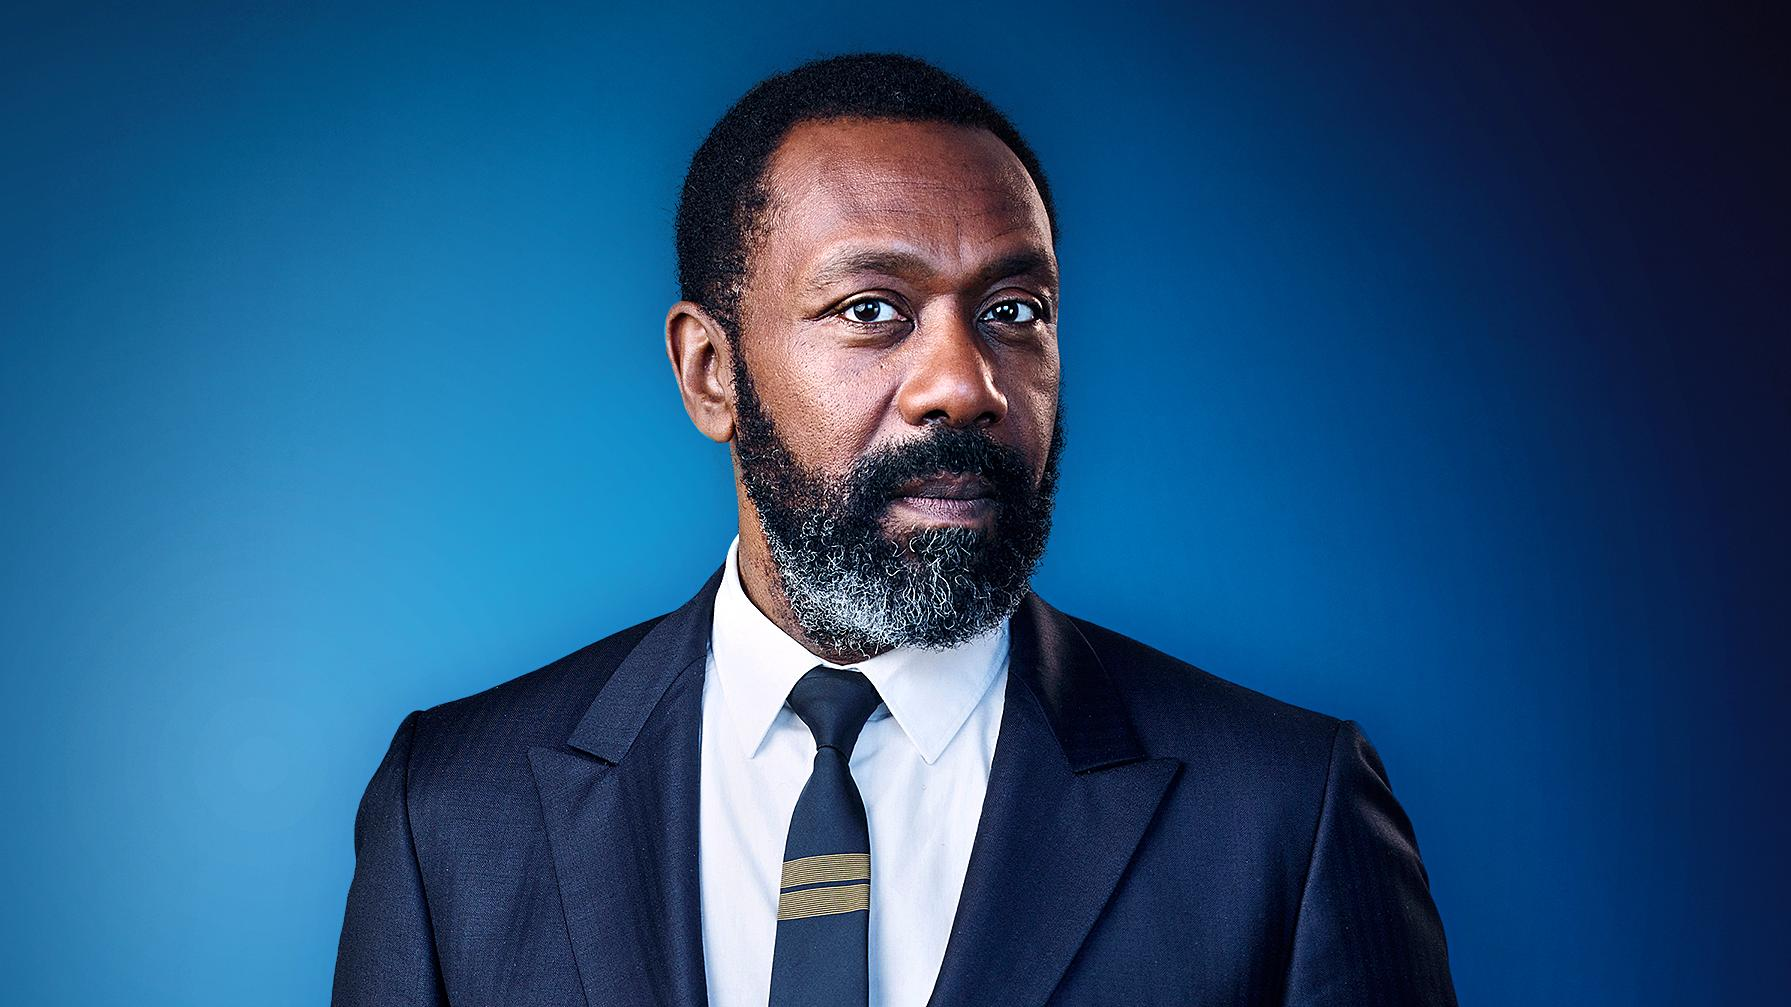 picture of lenny henry in a navy blue suit and blue background